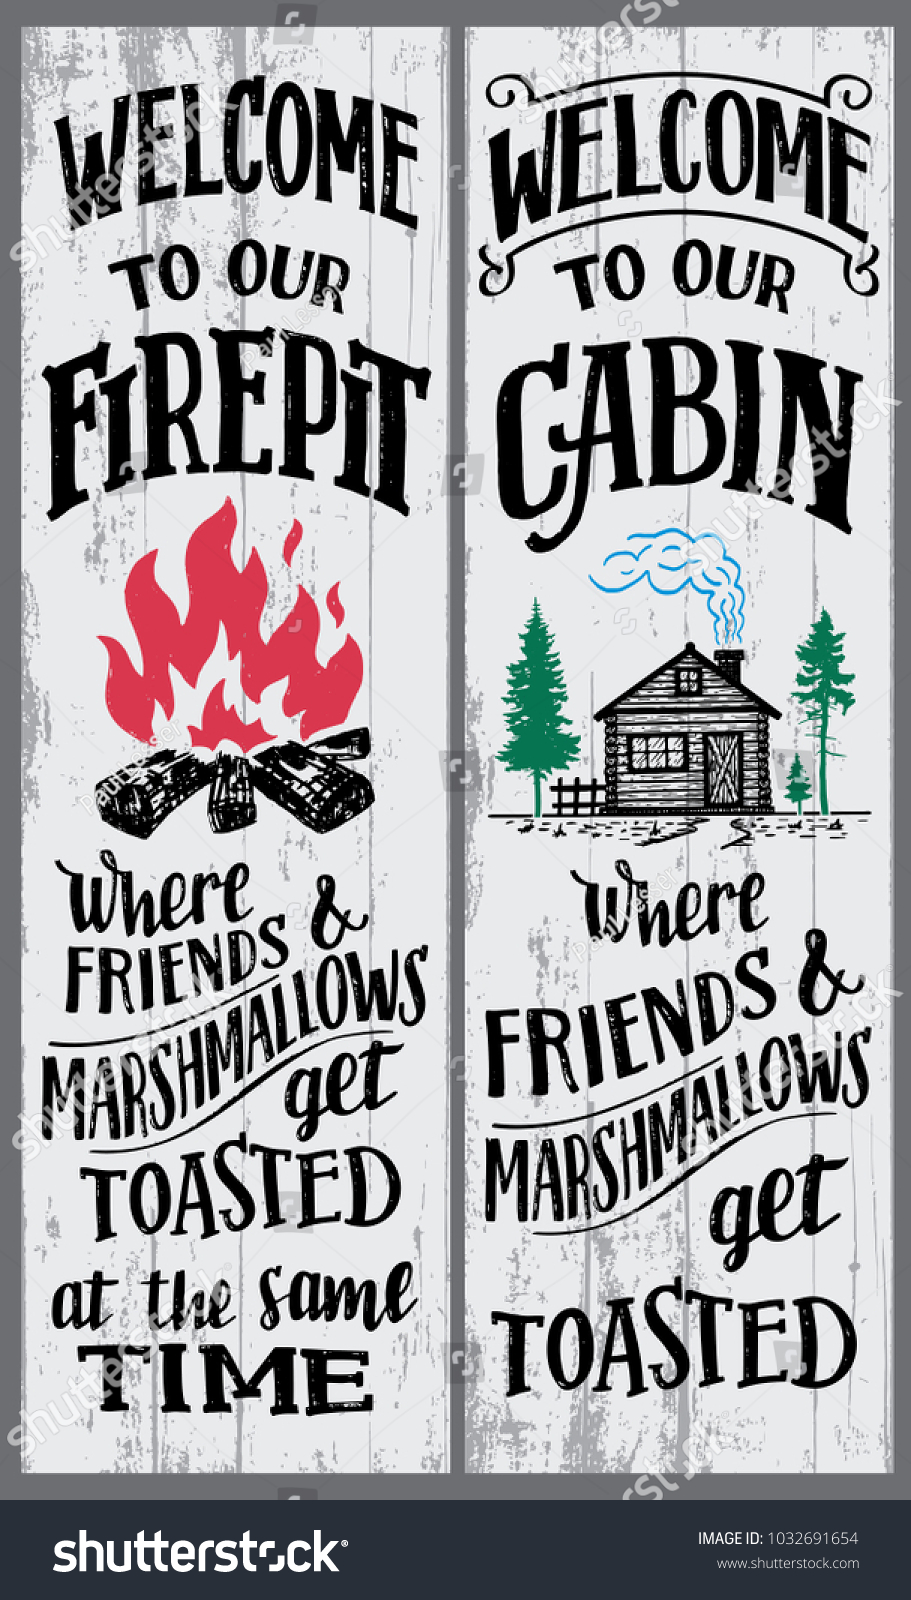 Welcome to our firepit and cabin signs set. Where friends and marshmallows  get toasted. - Welcome Our Firepit Cabin Signs Set Stock Vector (Royalty Free